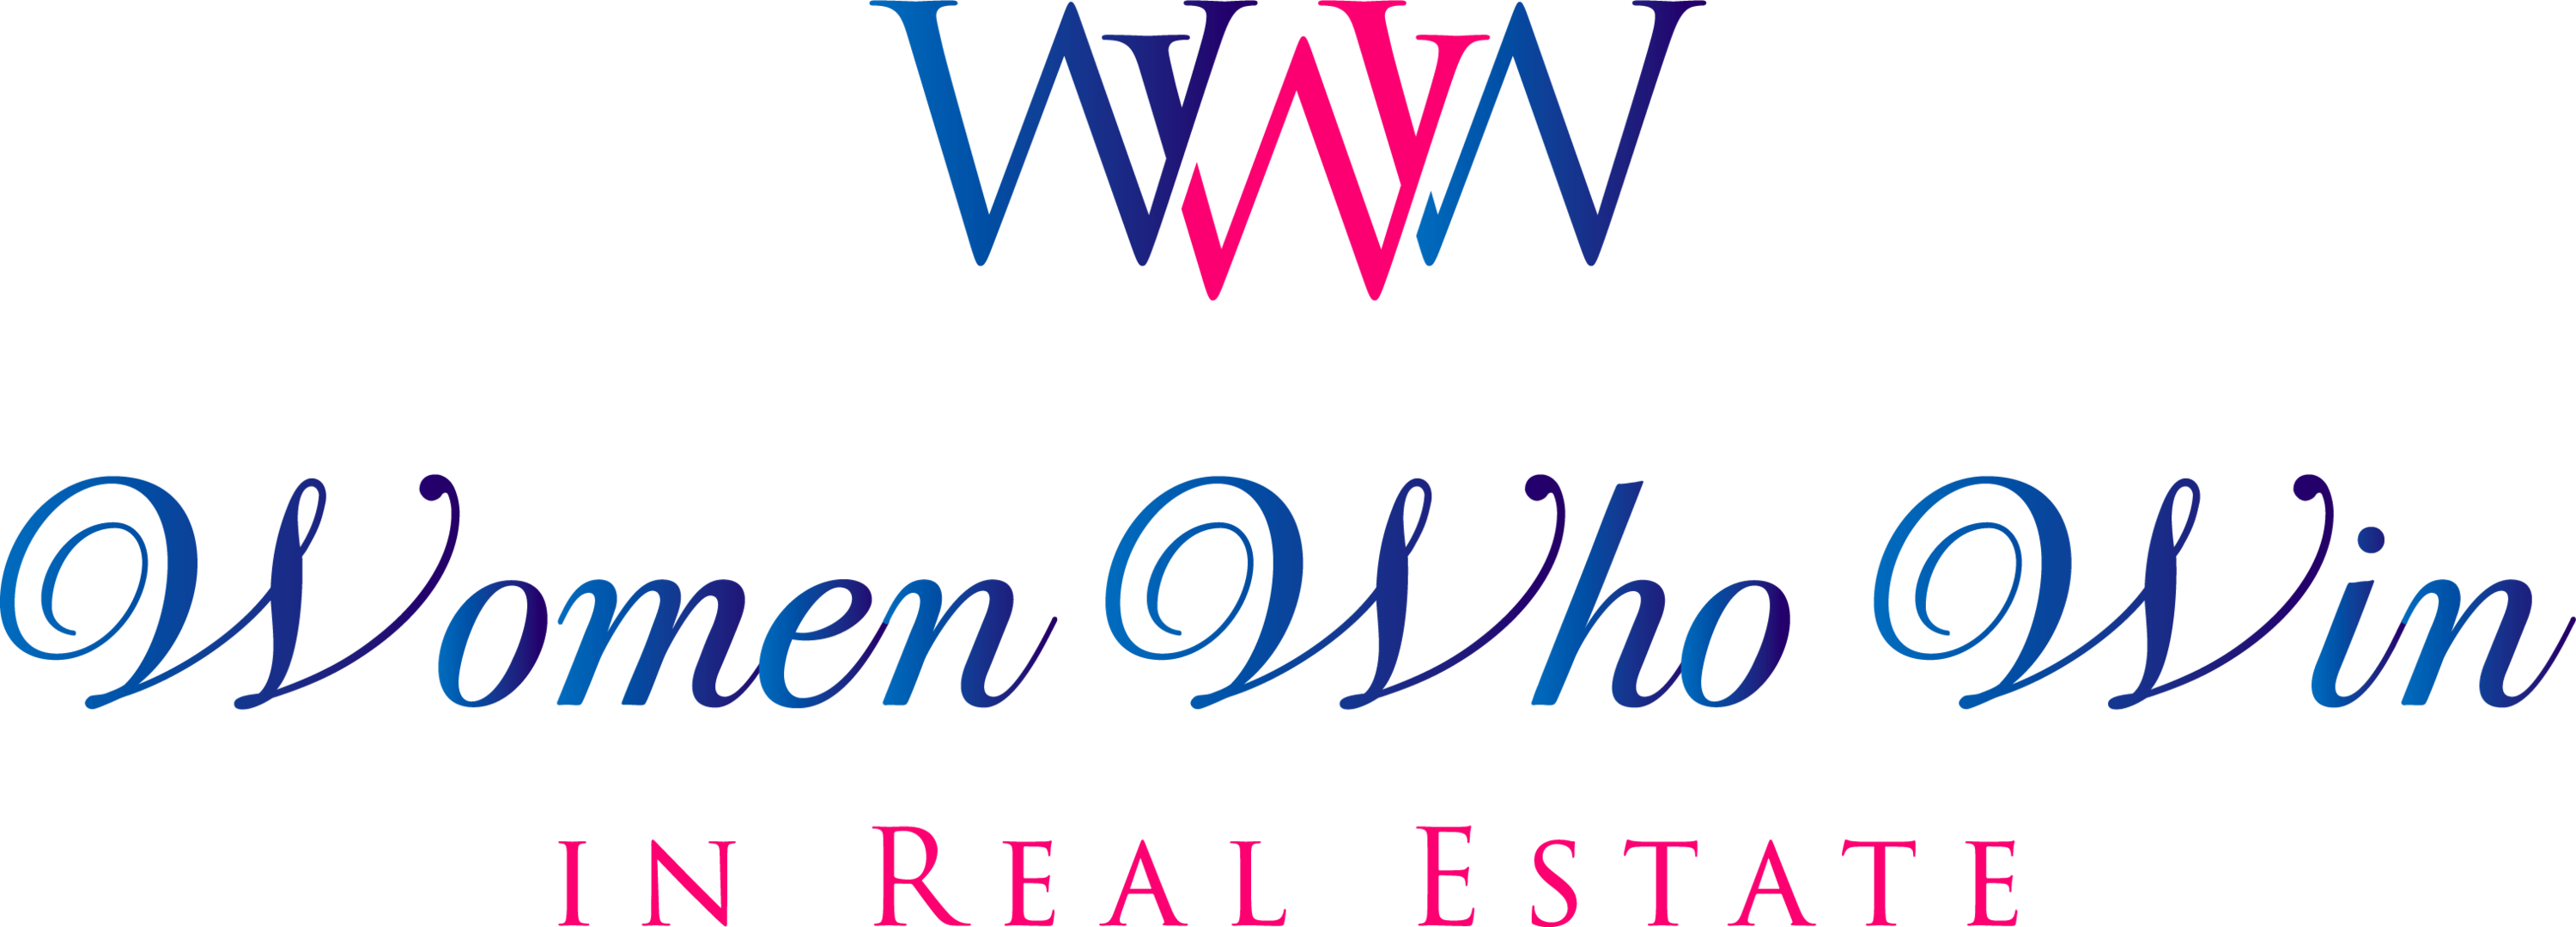 Women and Wealth Network - Real Estate Investing Association